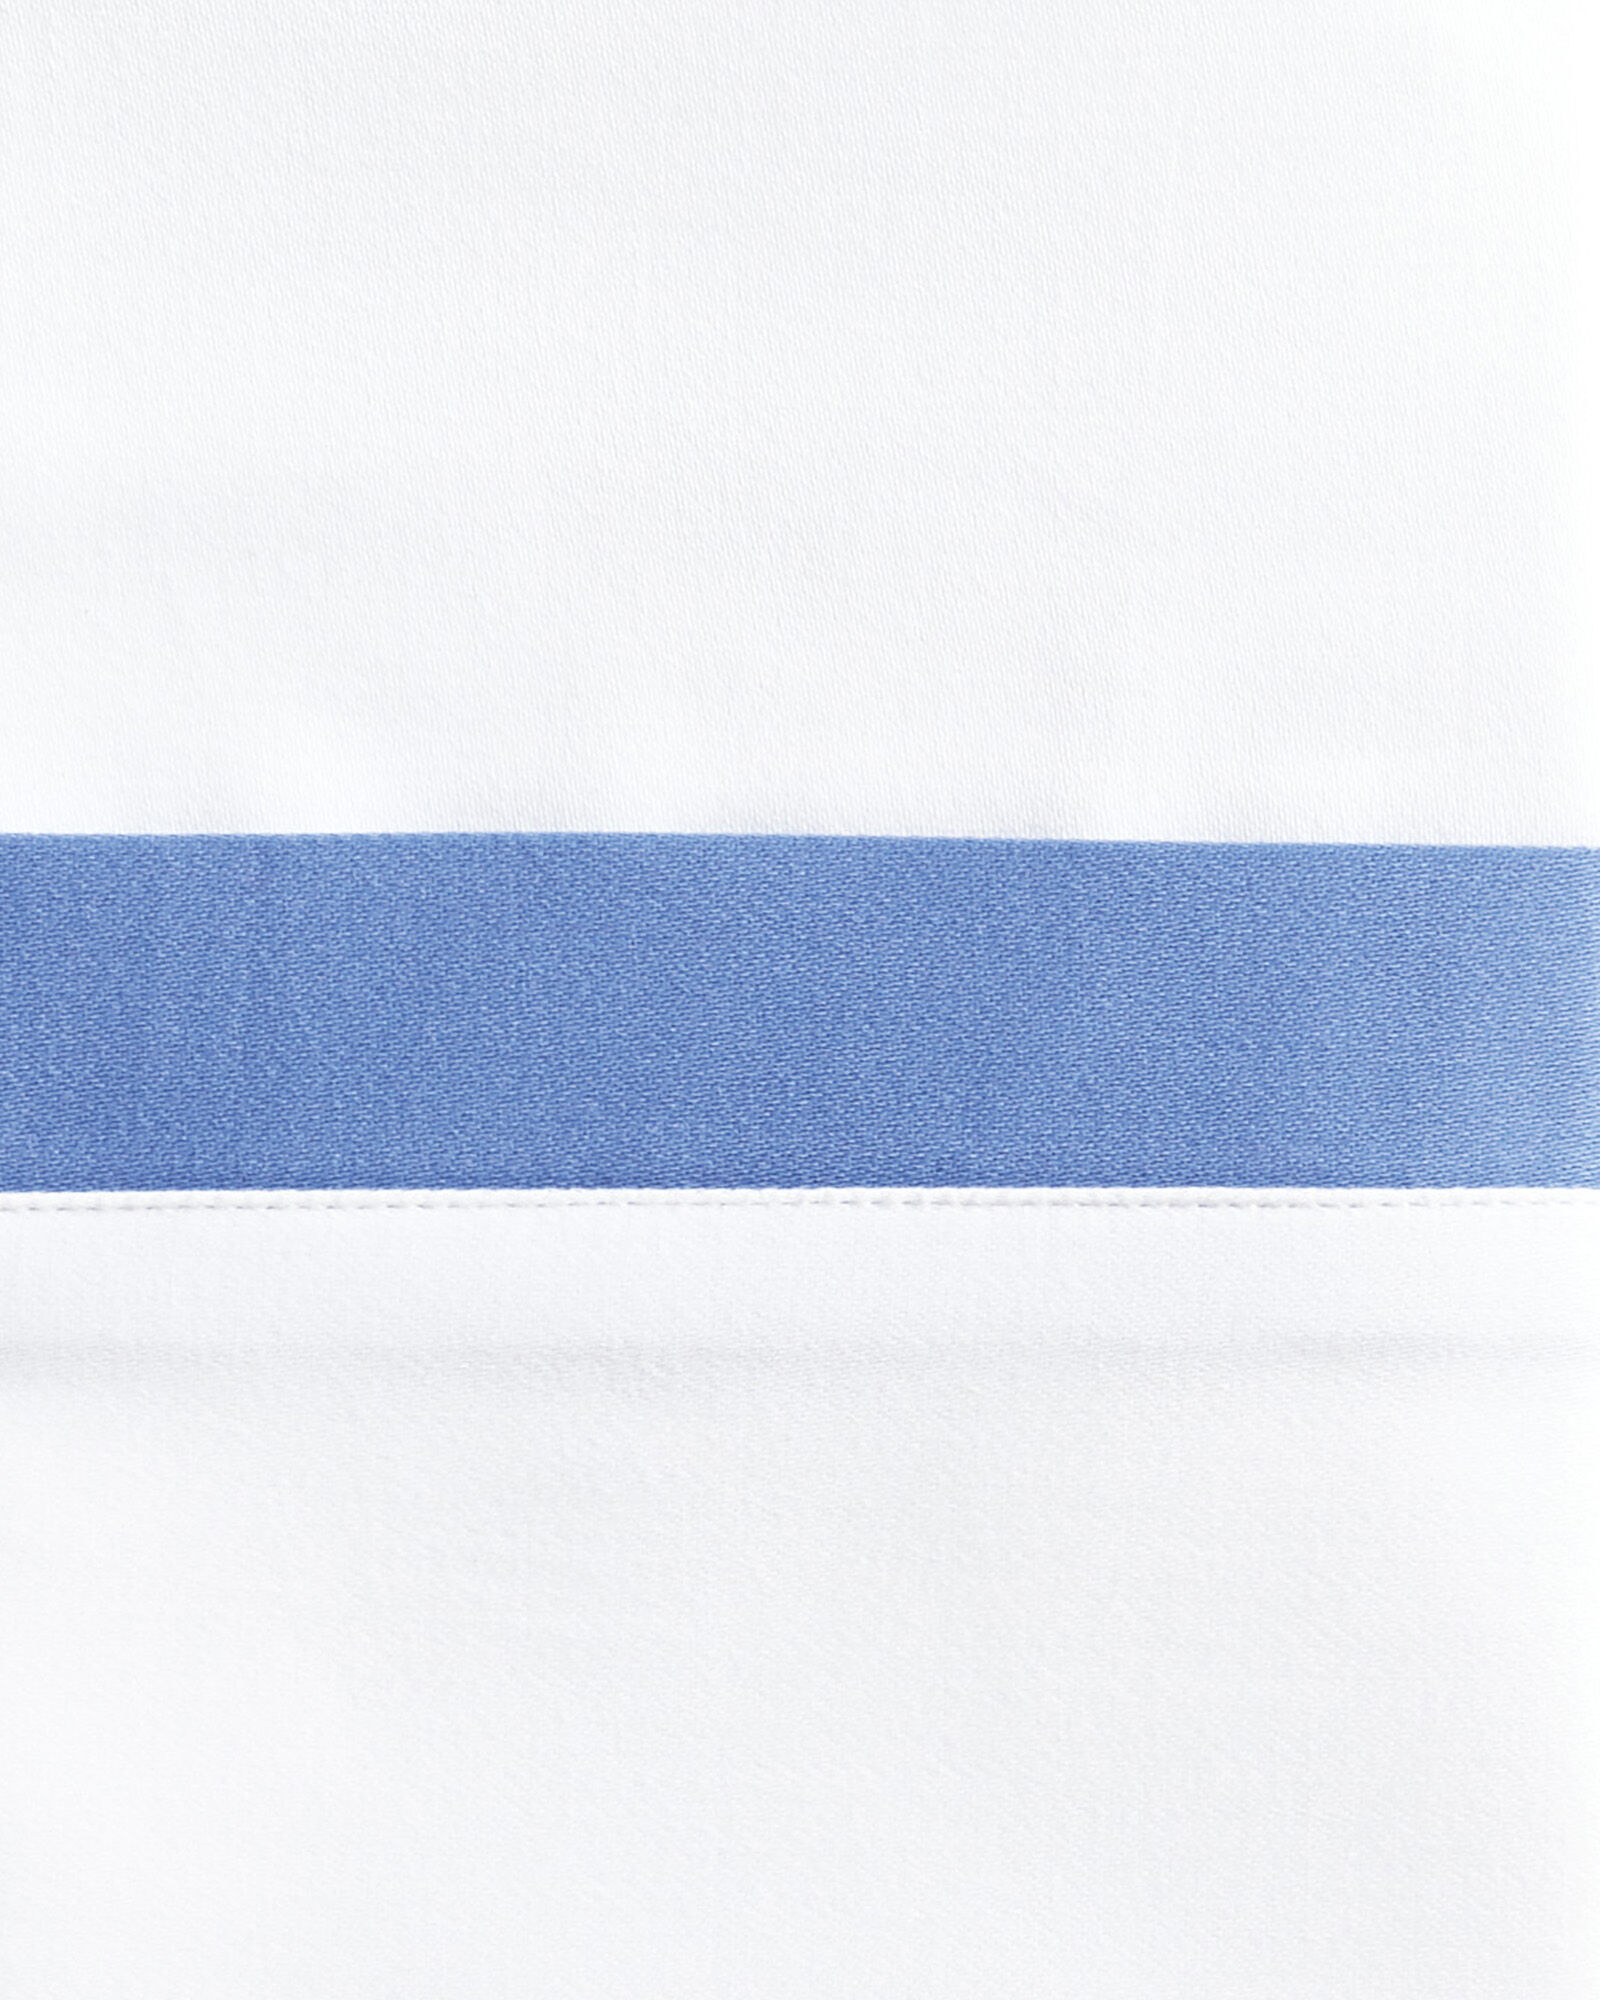 Border Frame Sheet Swatch, French Blue